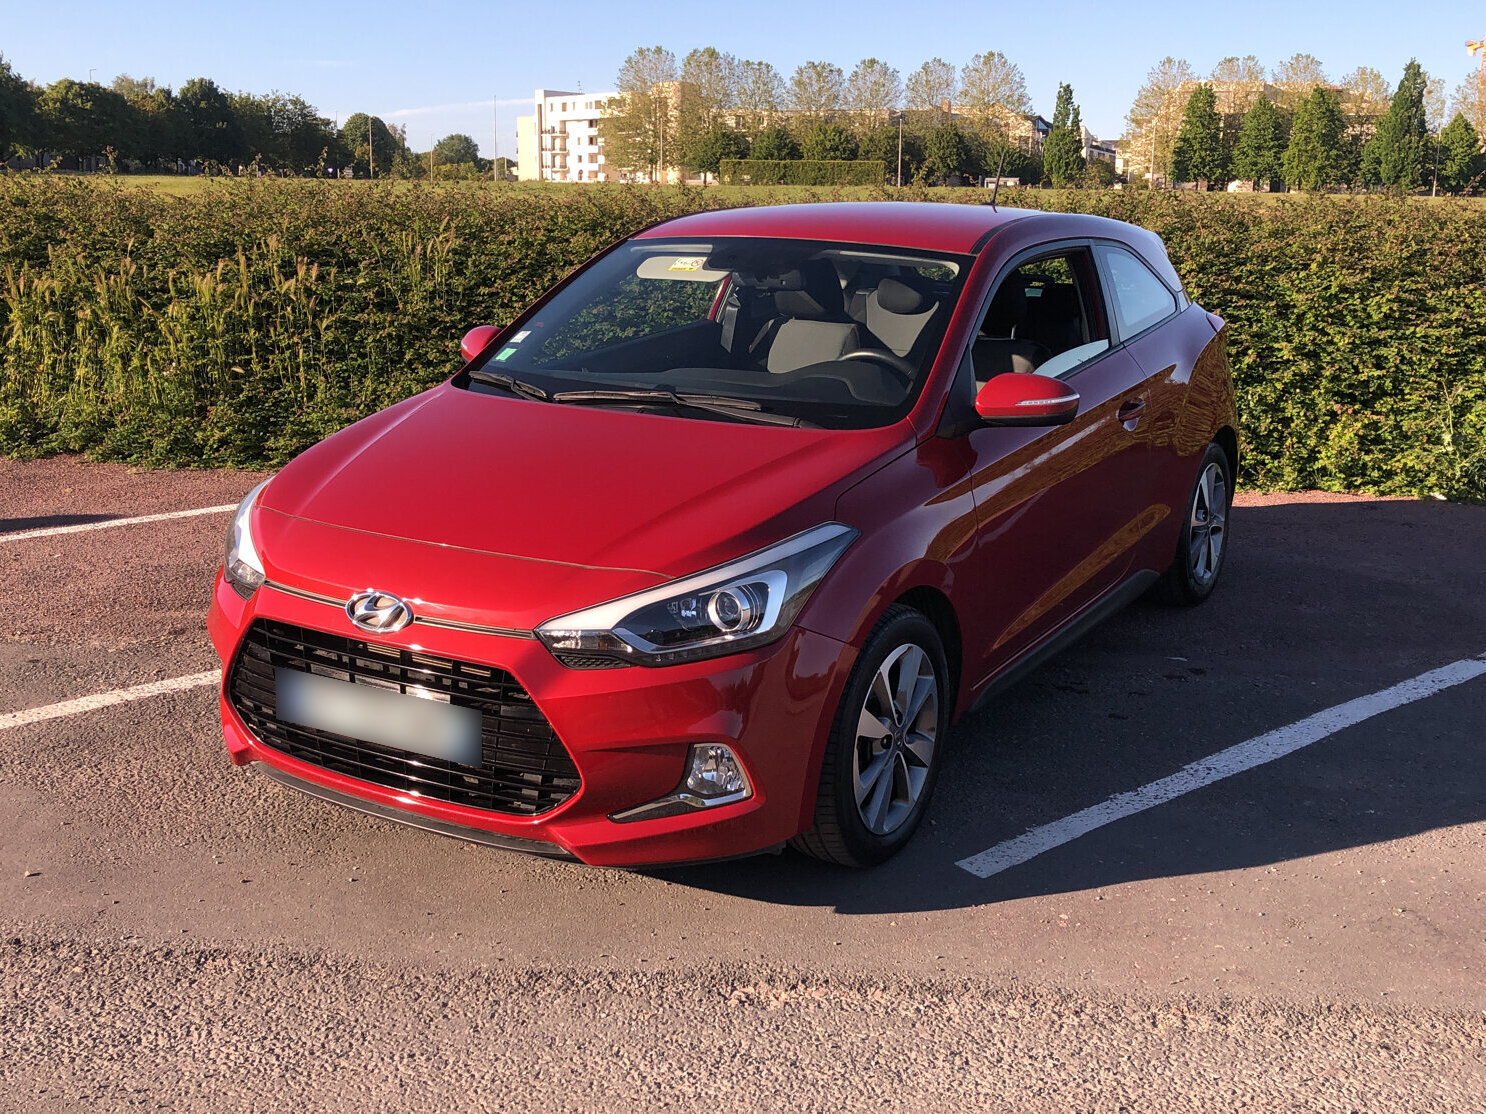 HYUNDAI I20 COUPE 1.0 T-GDI 100 INTUITIVE PLUS